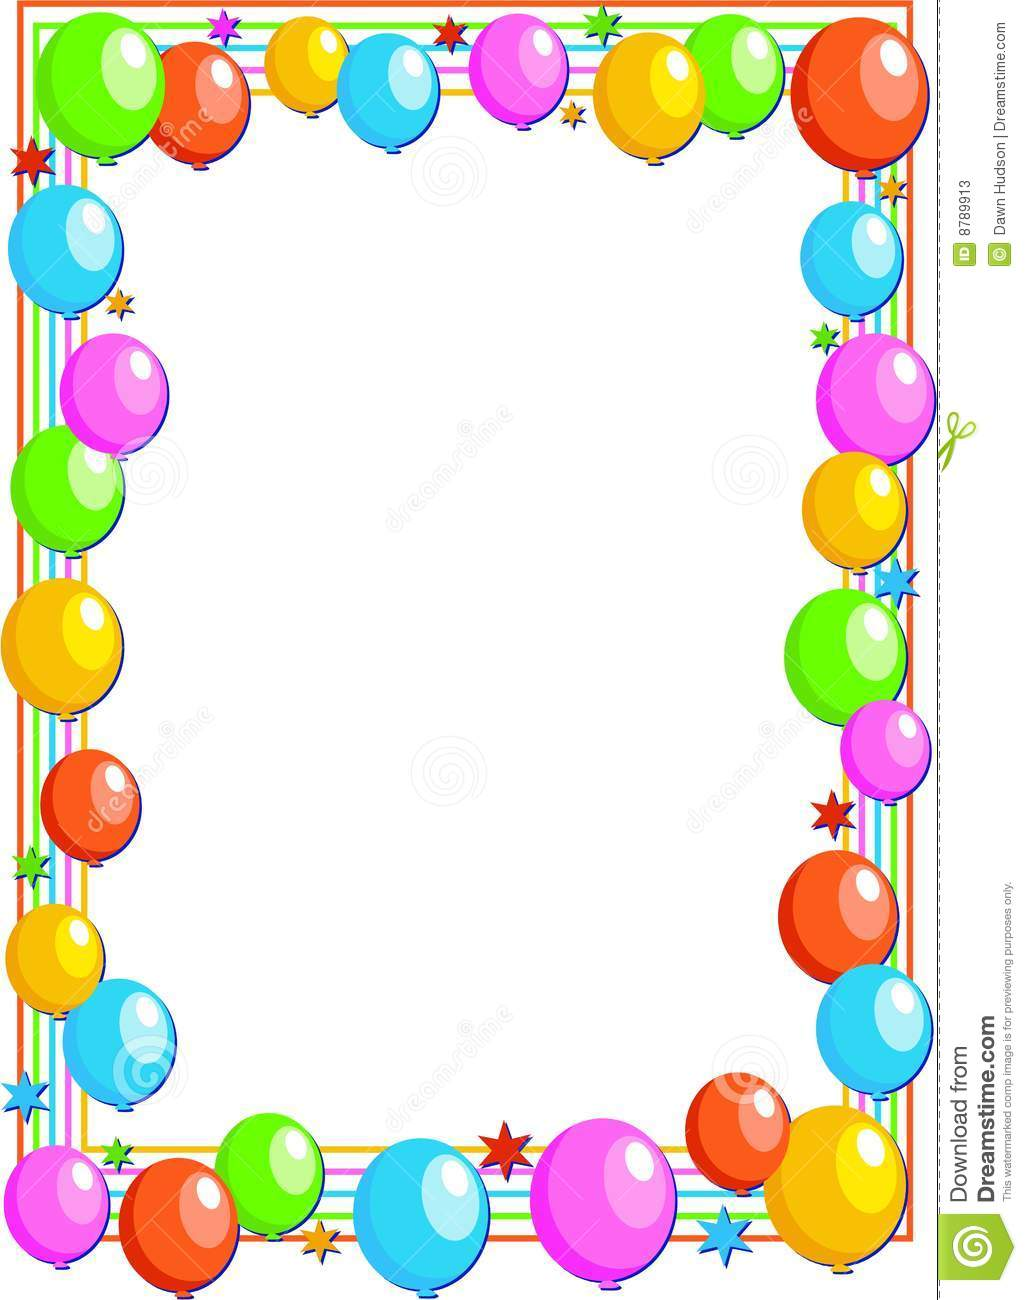 Balloon Border Stock Photos - Image: 8789913